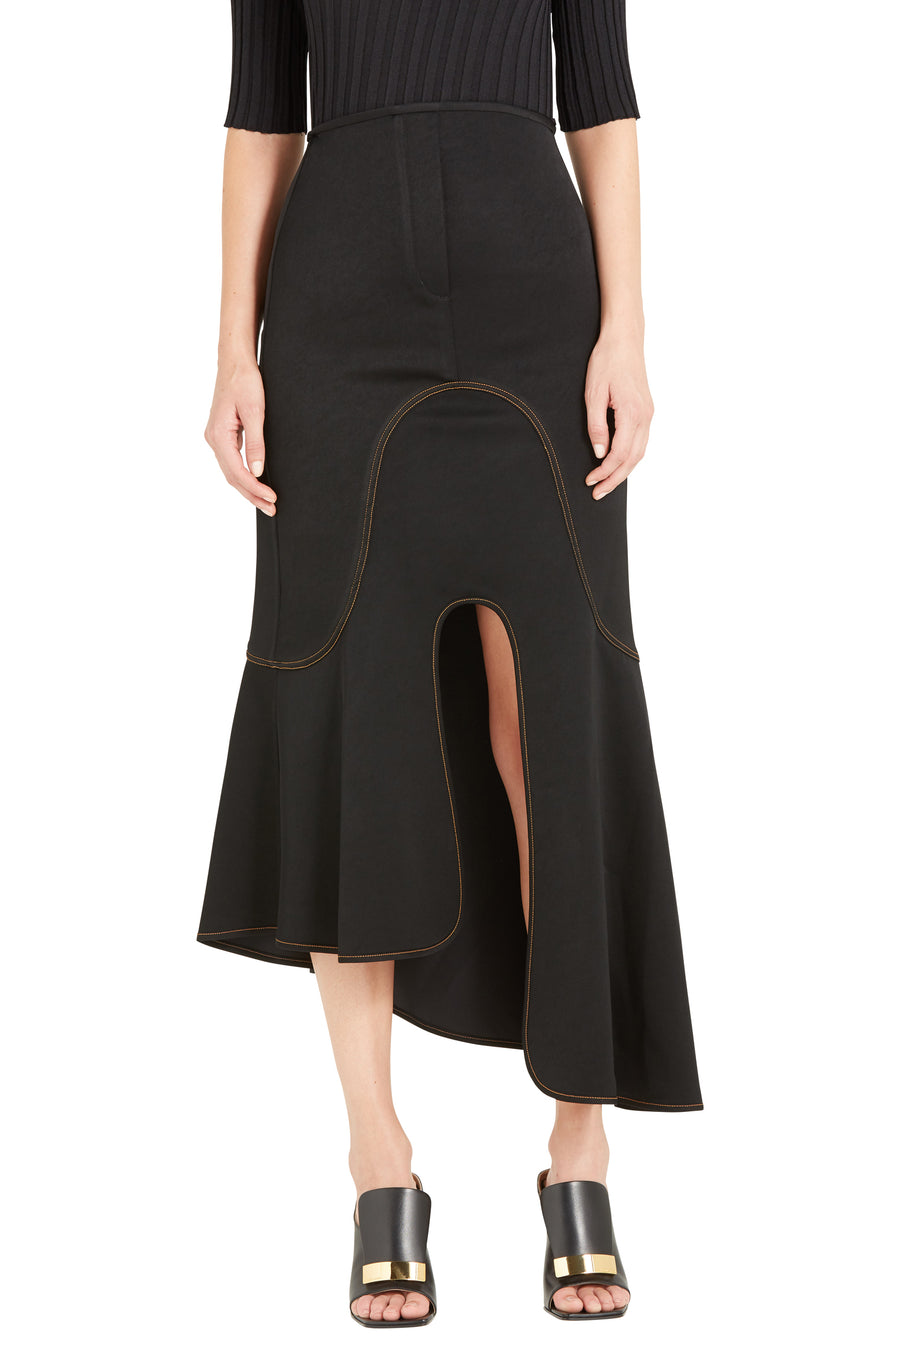 ORBIT ASYMETRICAL SKIRT